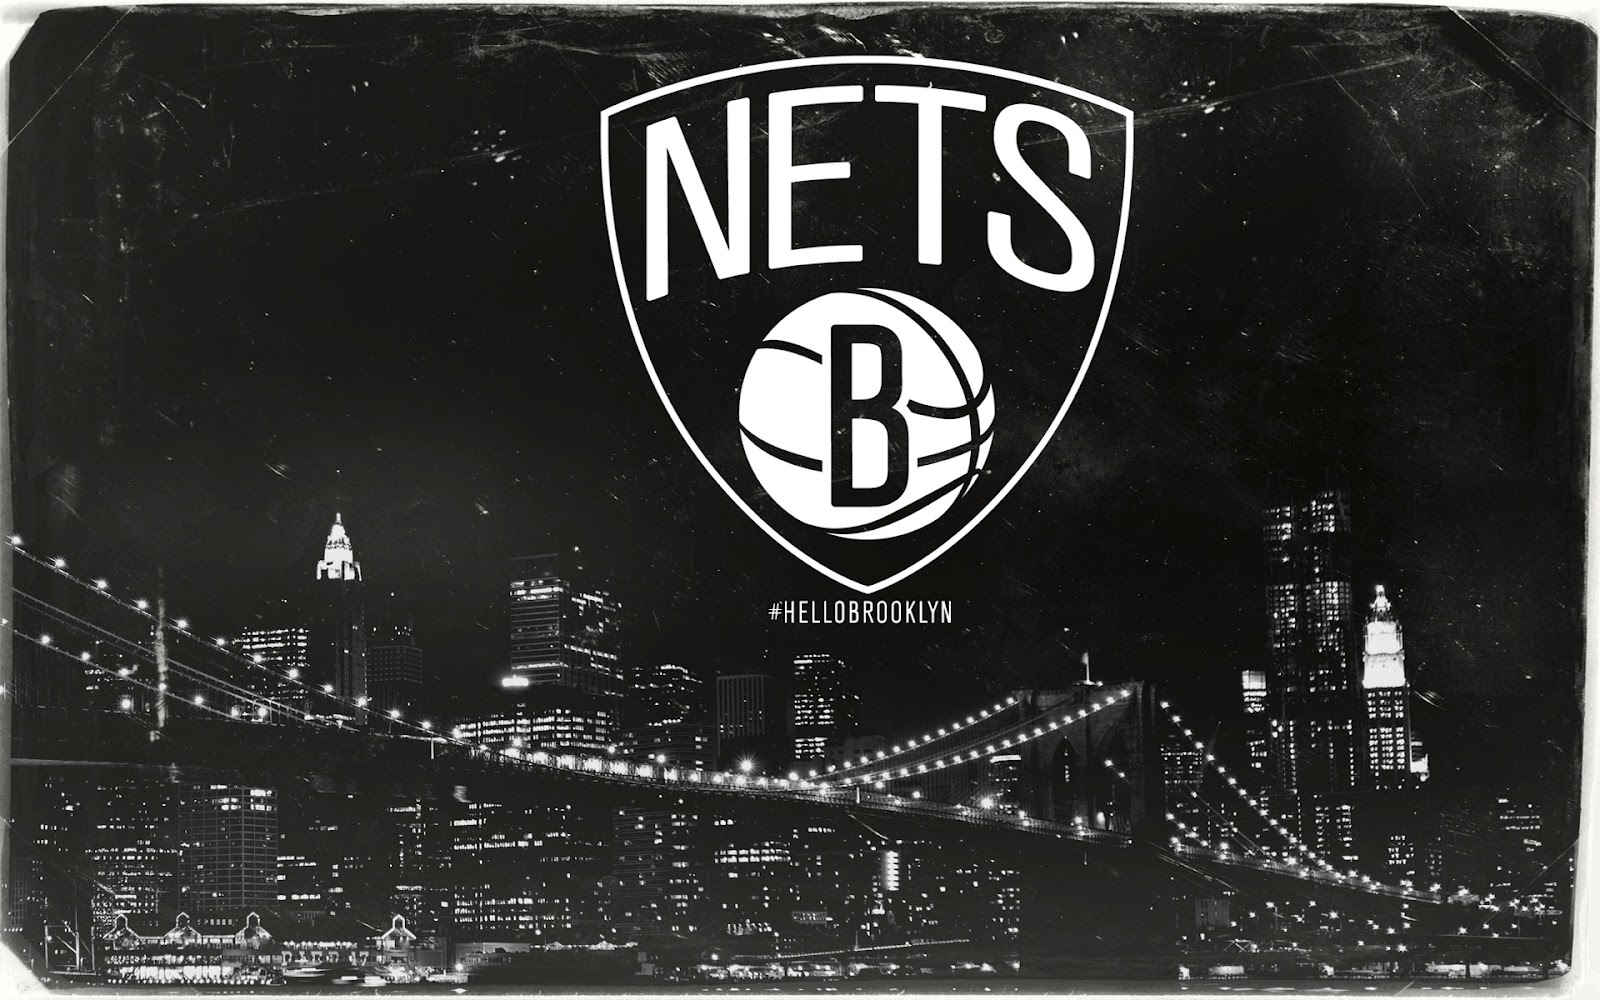 Brooklyn Netz